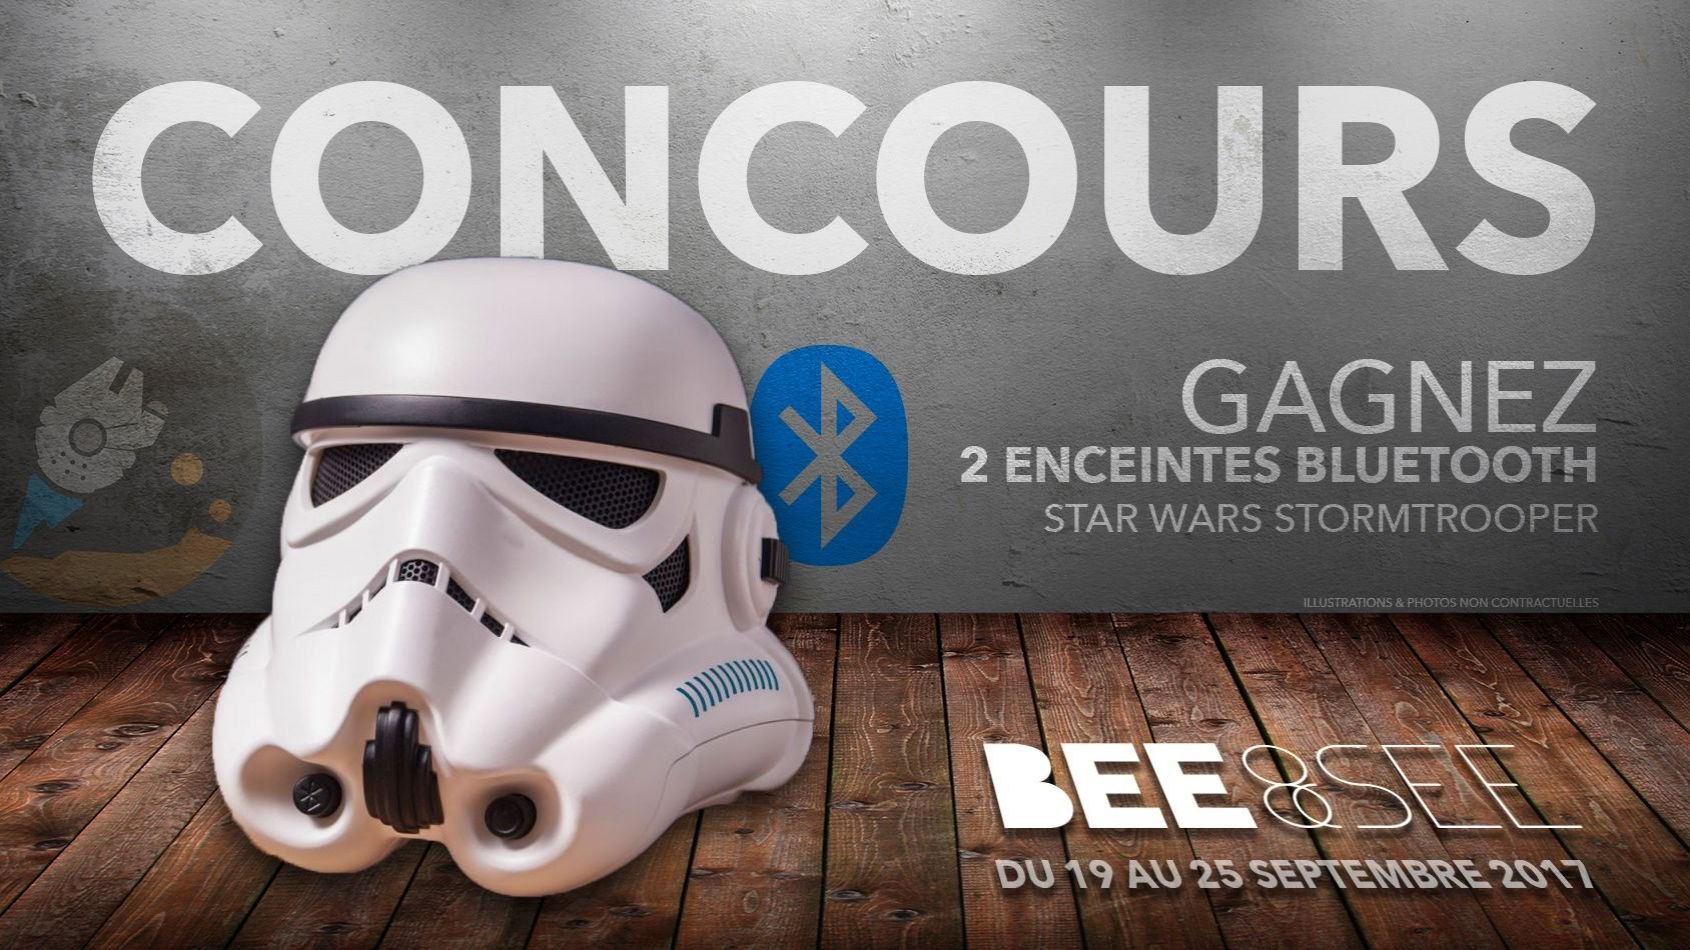 CONCOURS - Gagnez 2 enceintes Stormtrooper avec Bee&See